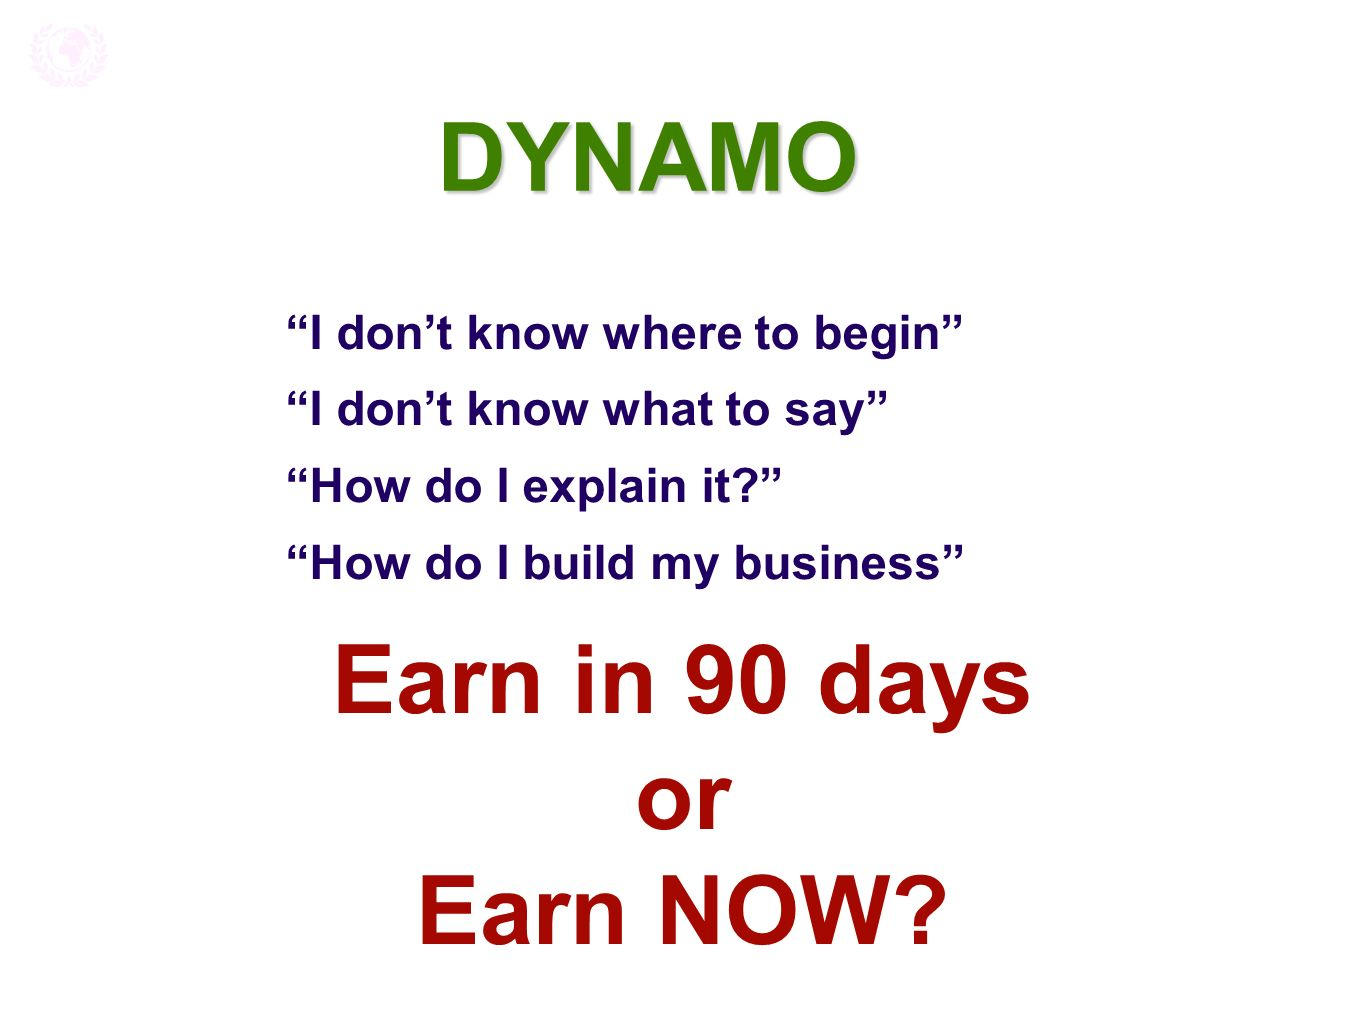 DYNAMO I dont know where to begin I dont know what to say How do I explain it? How do I build my business Earn in 90 days or Earn NOW?